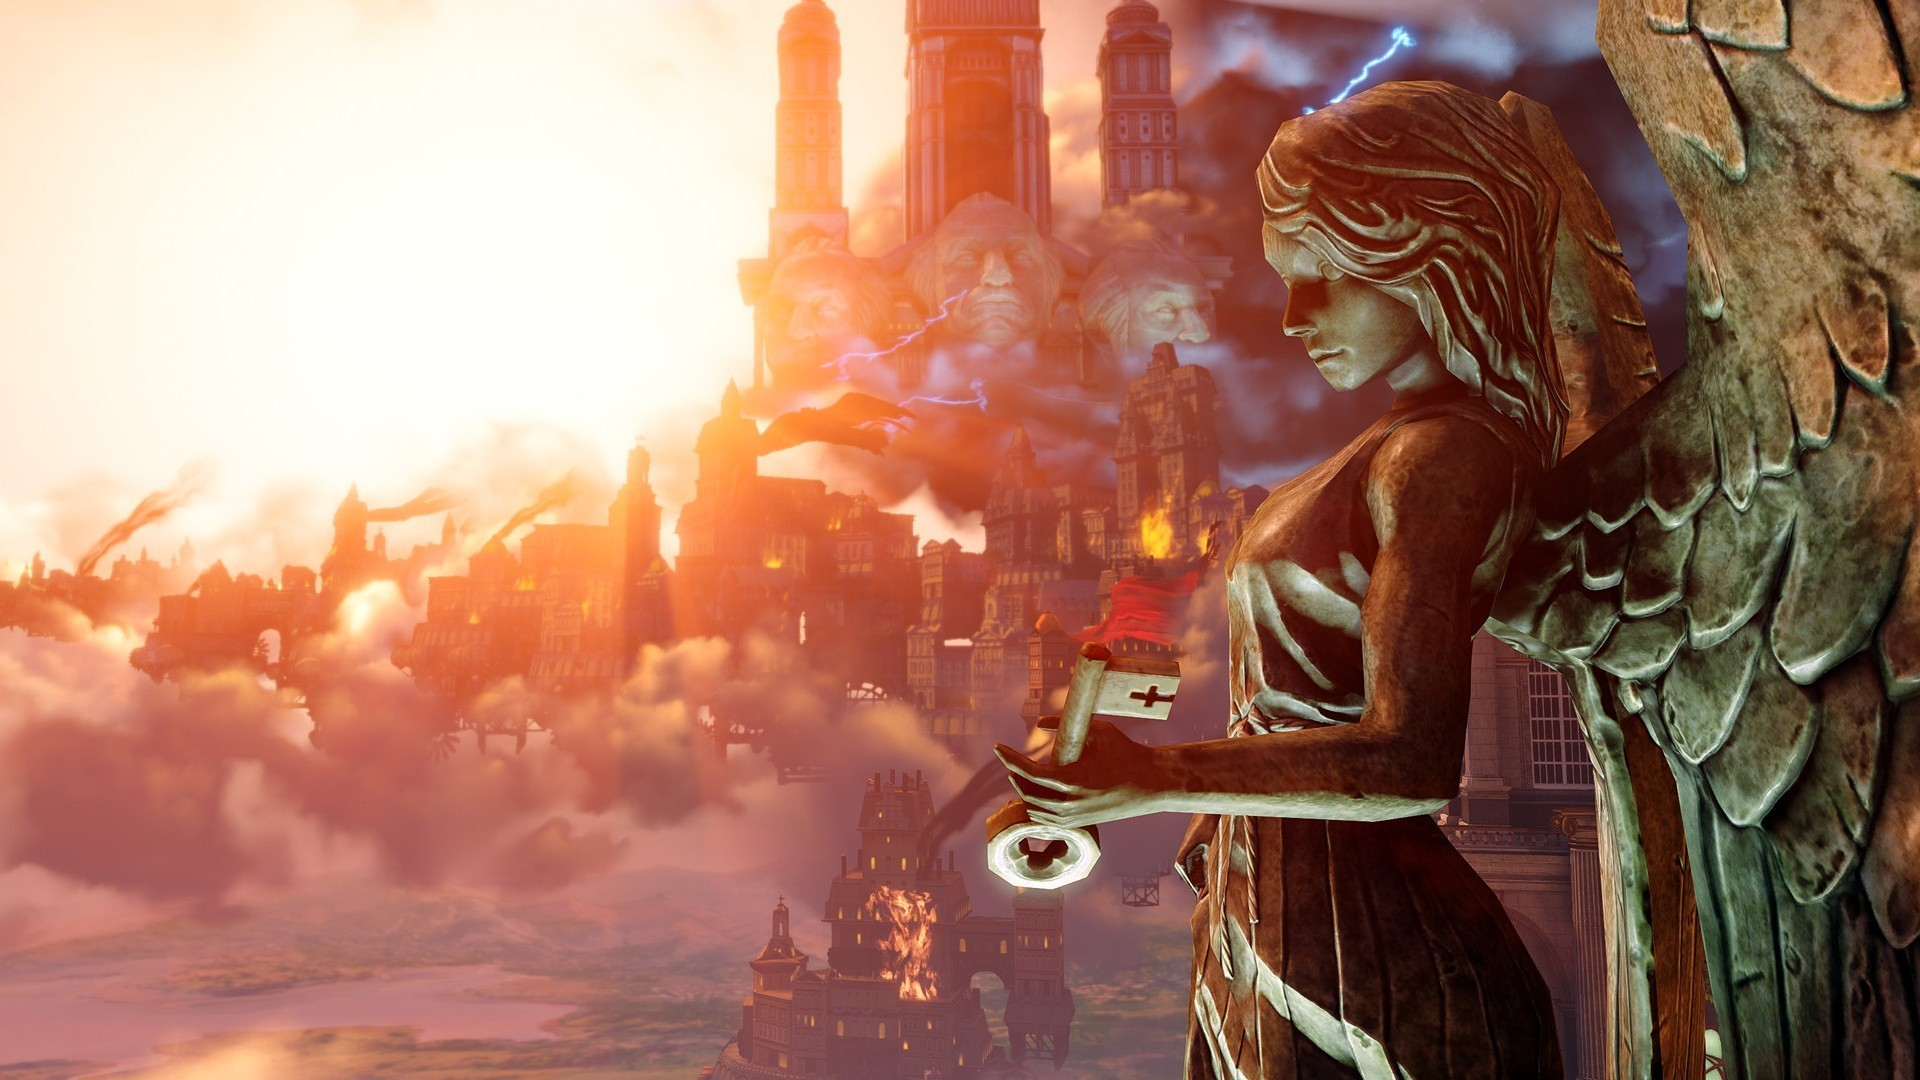 Bioshock Infinite Wallpaper Collection For Free Download